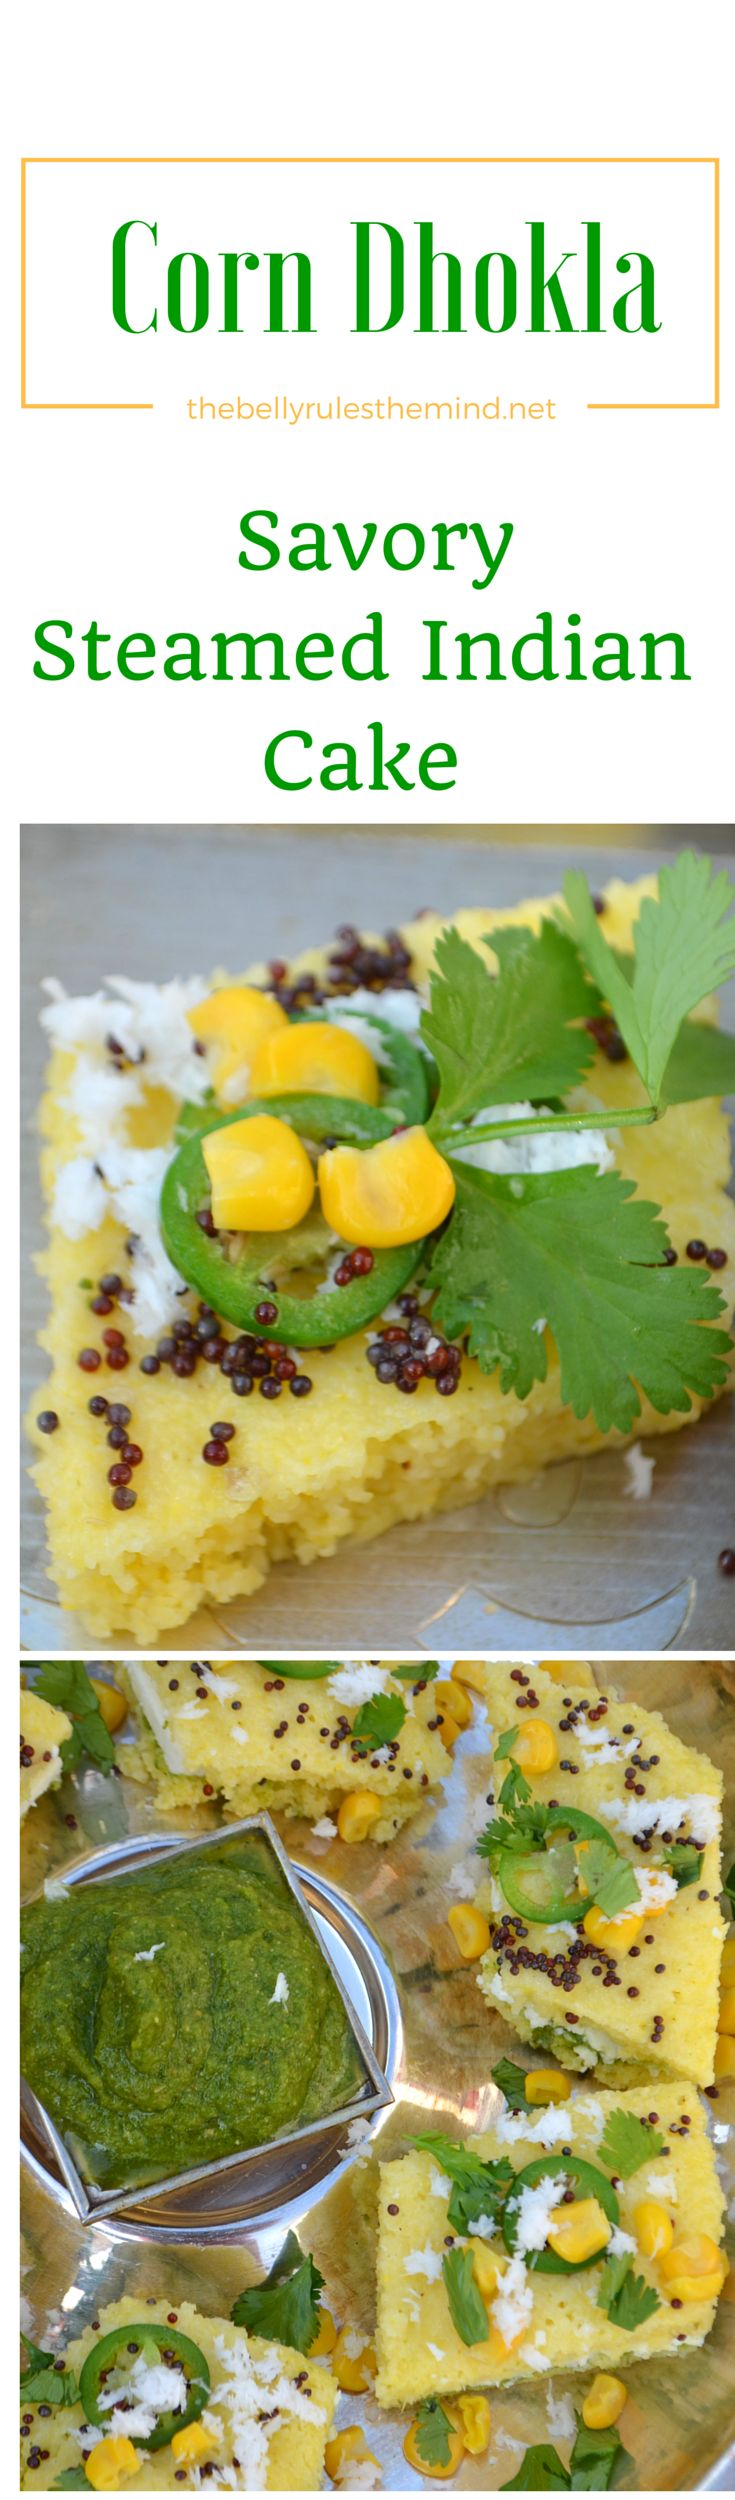 Instant Corn Dhokla recipe with step by step photos. learn how to make popular Snack>>> http://wp.me/p7oUc4-zy